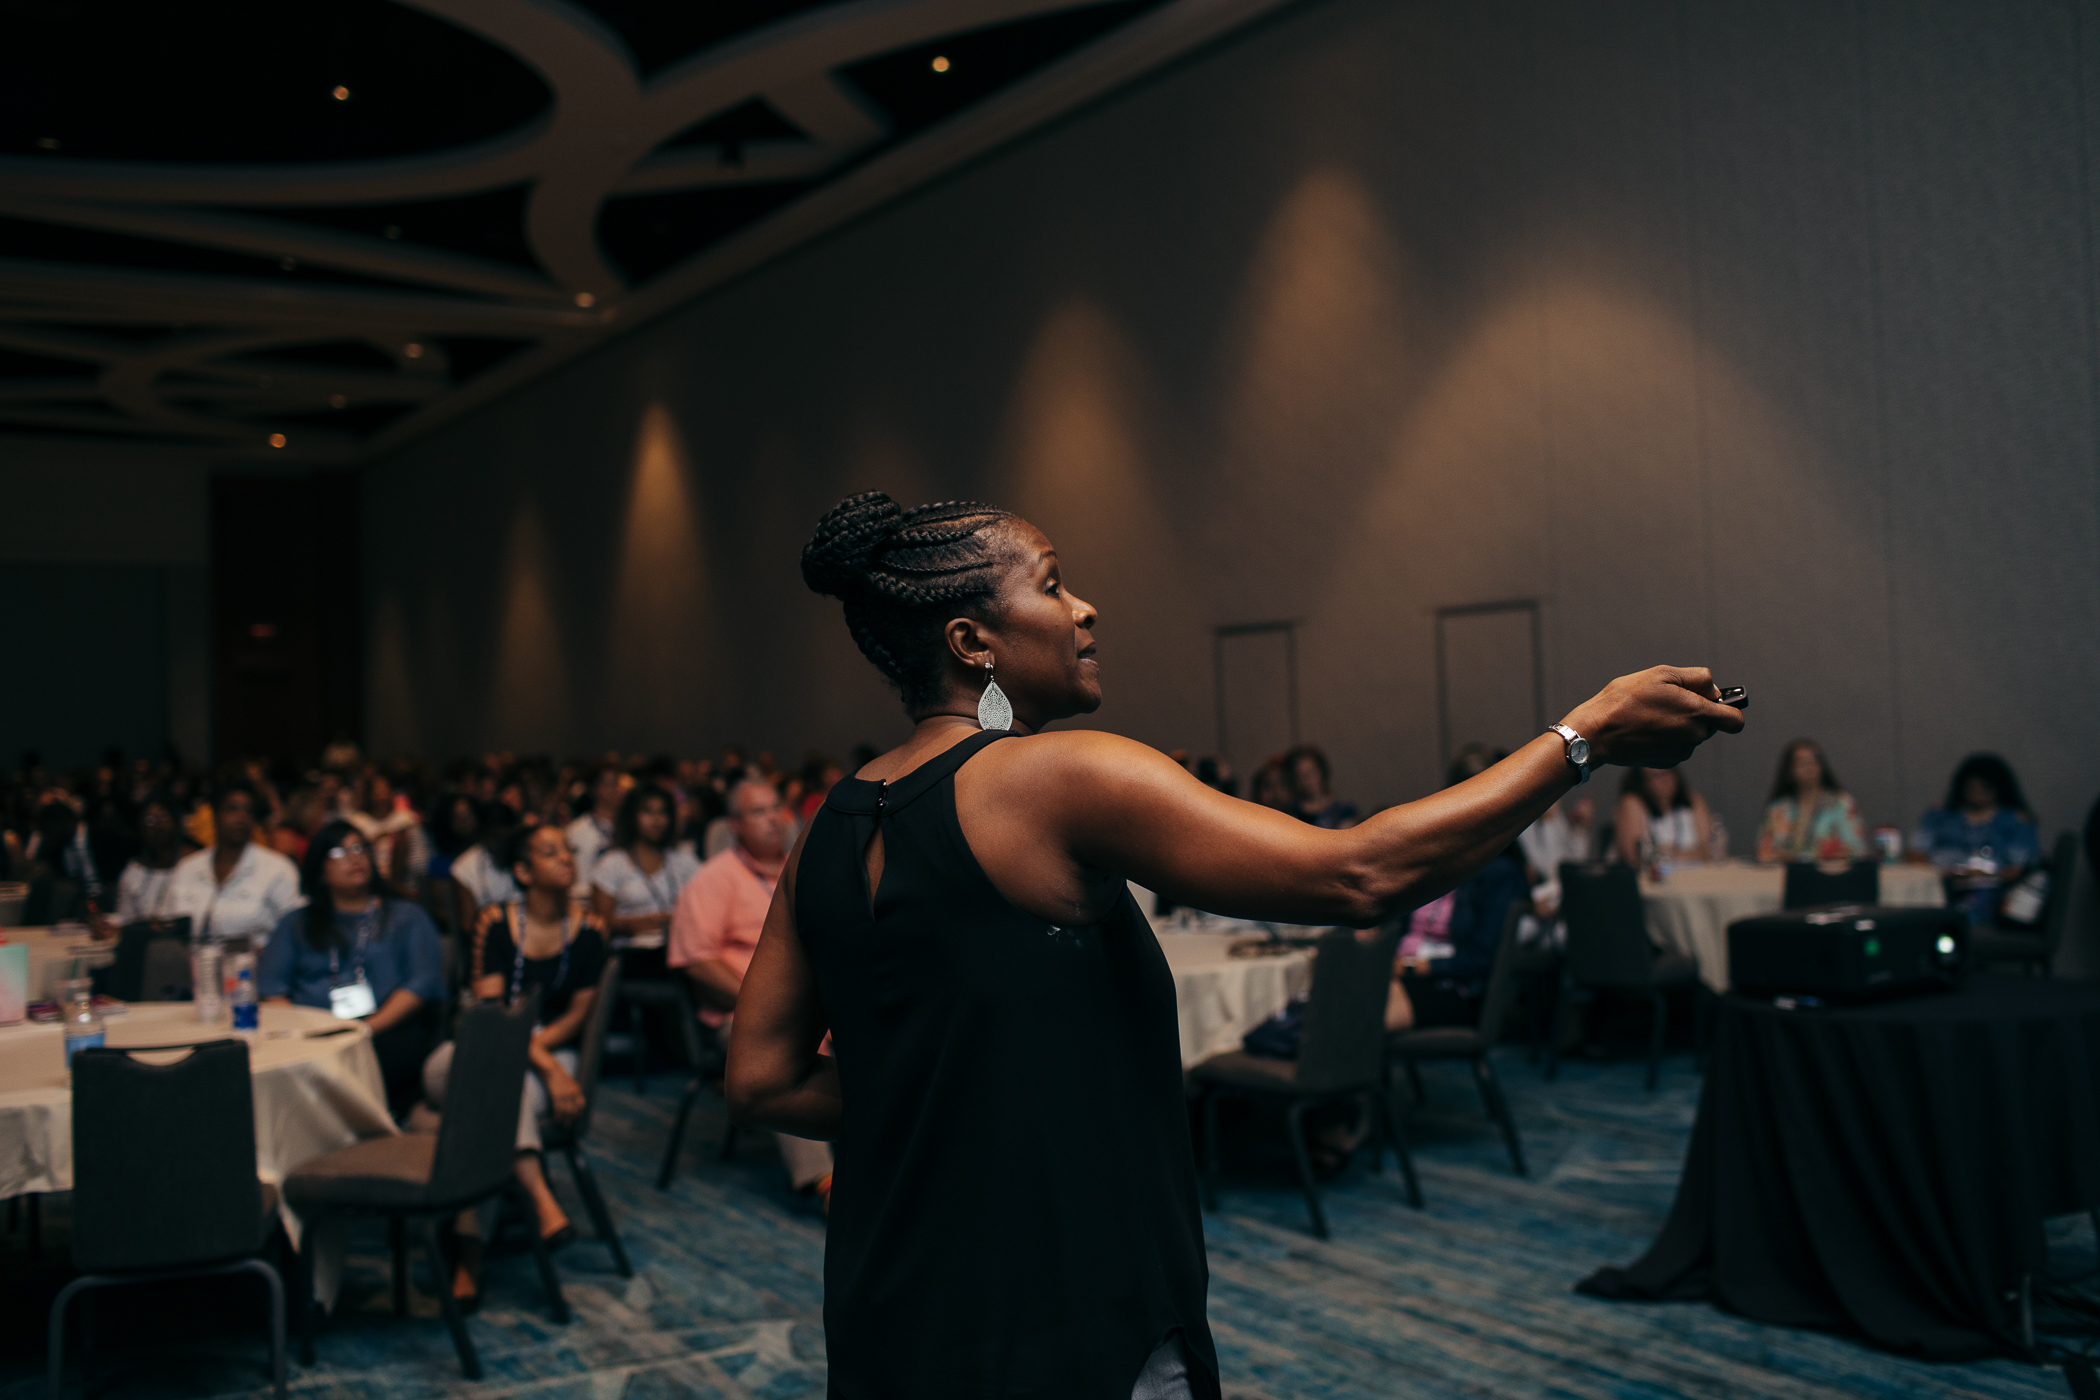 live event commercial photography brand storytelling for education florida conference photographer ©2018abigailbobophotography-118.jpg